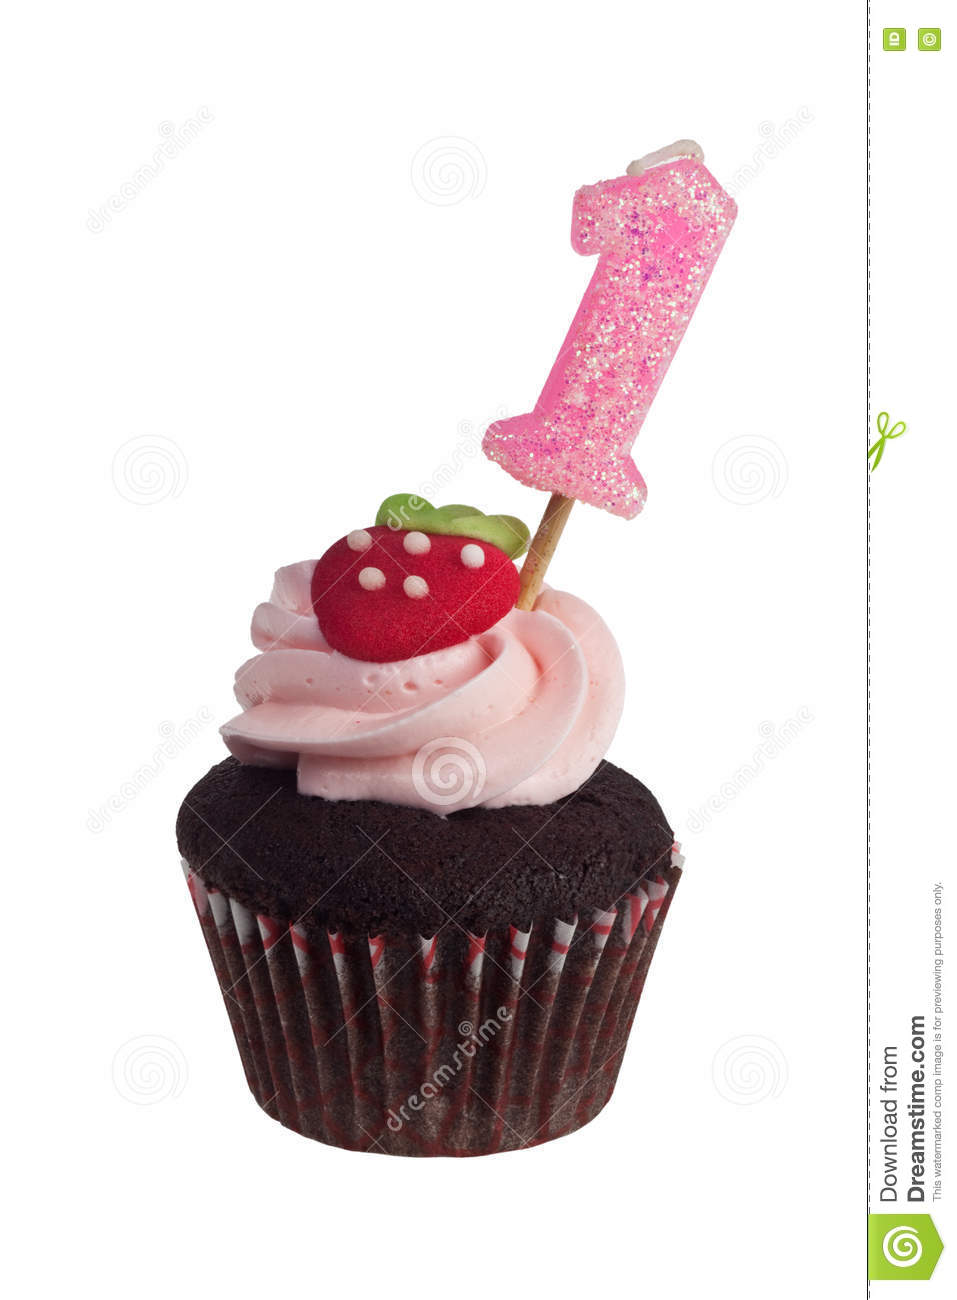 Mini Cupcake With Birthday Candle For One Year Old